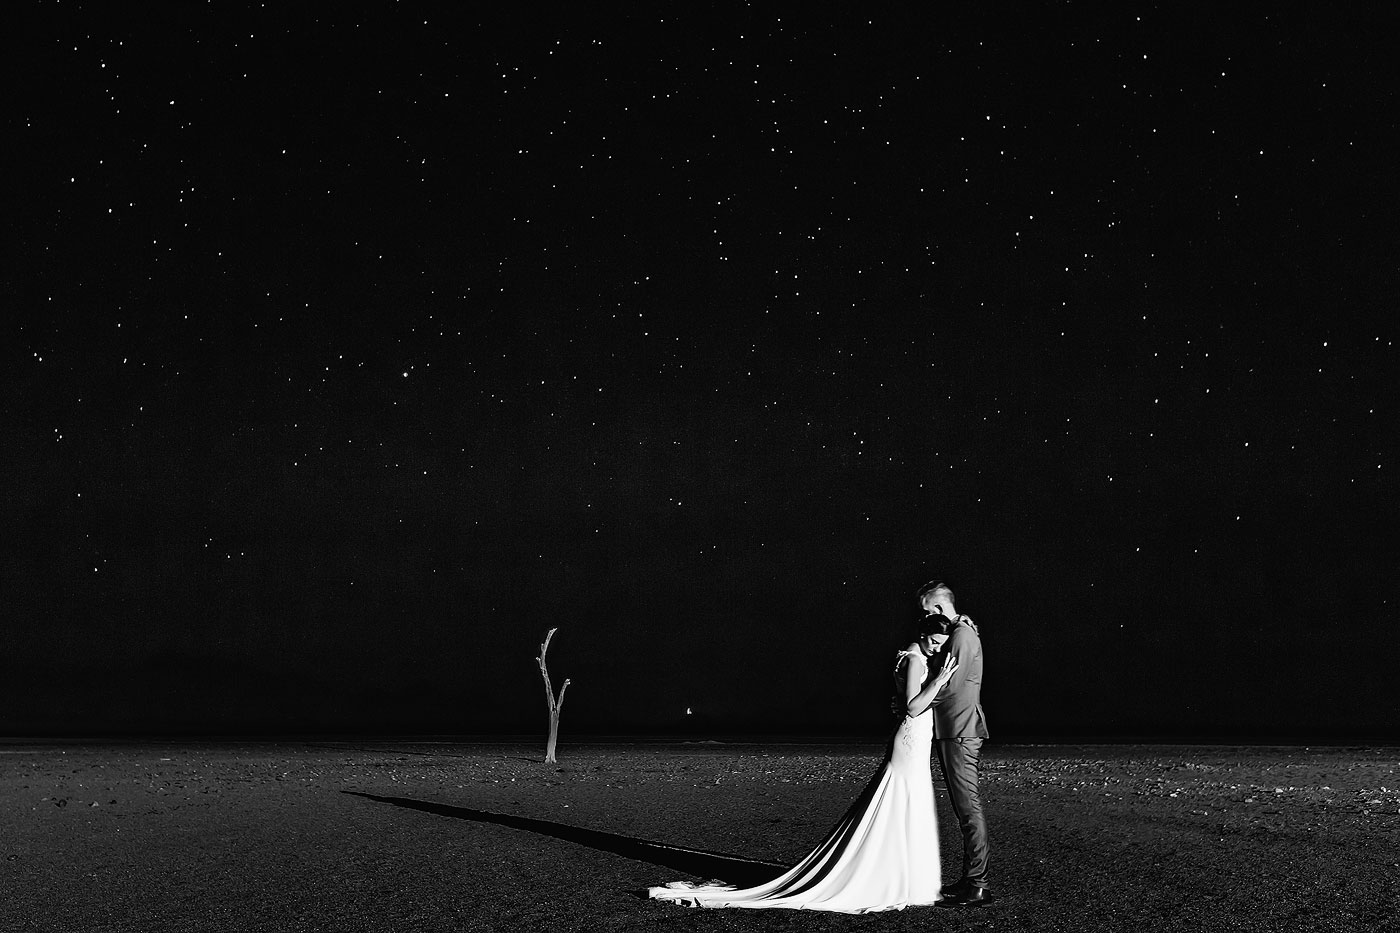 Namibia Milky Way Dessert Wedding Photo